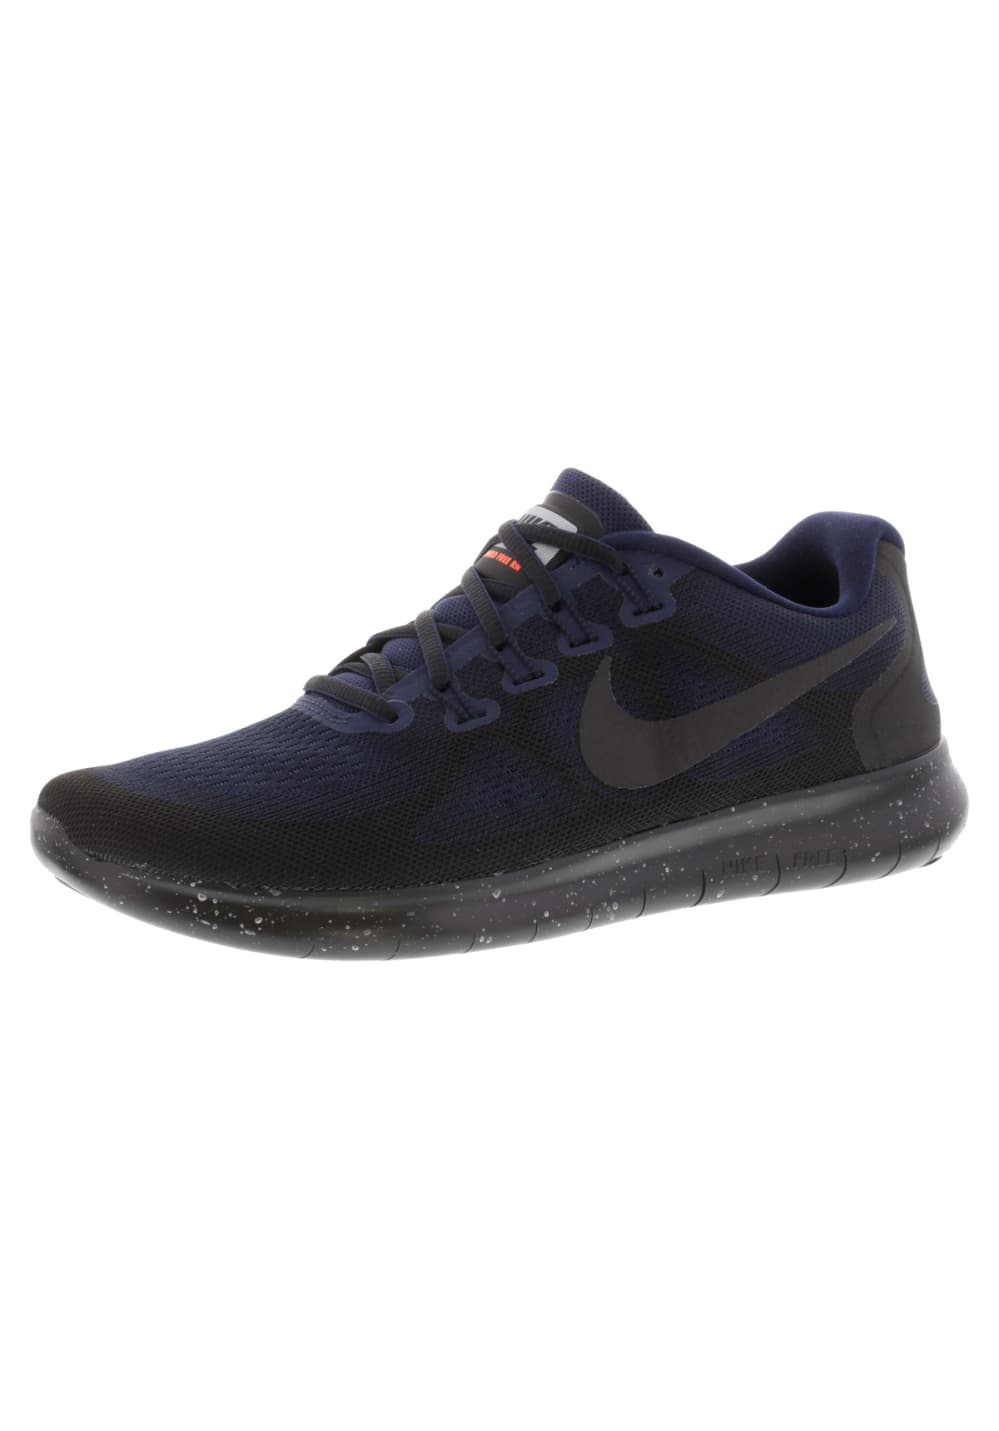 Nike Free RN 2017 Shield Chaussures running pour Homme Noir